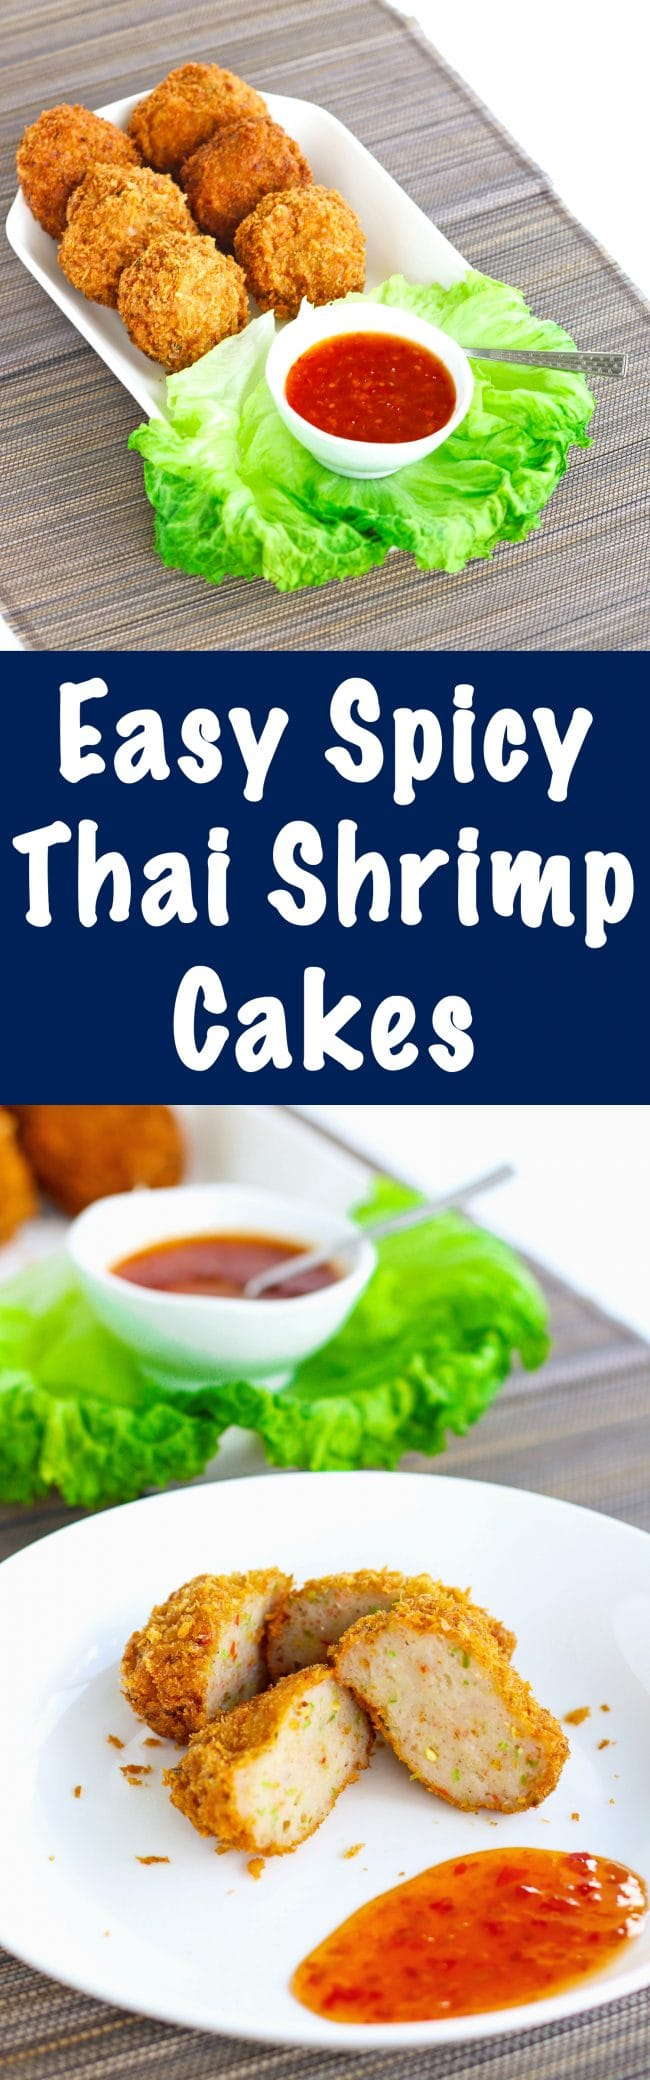 Spicy Thai Shrimp Cakes on white plate with a side of Thai sweet chili sauce